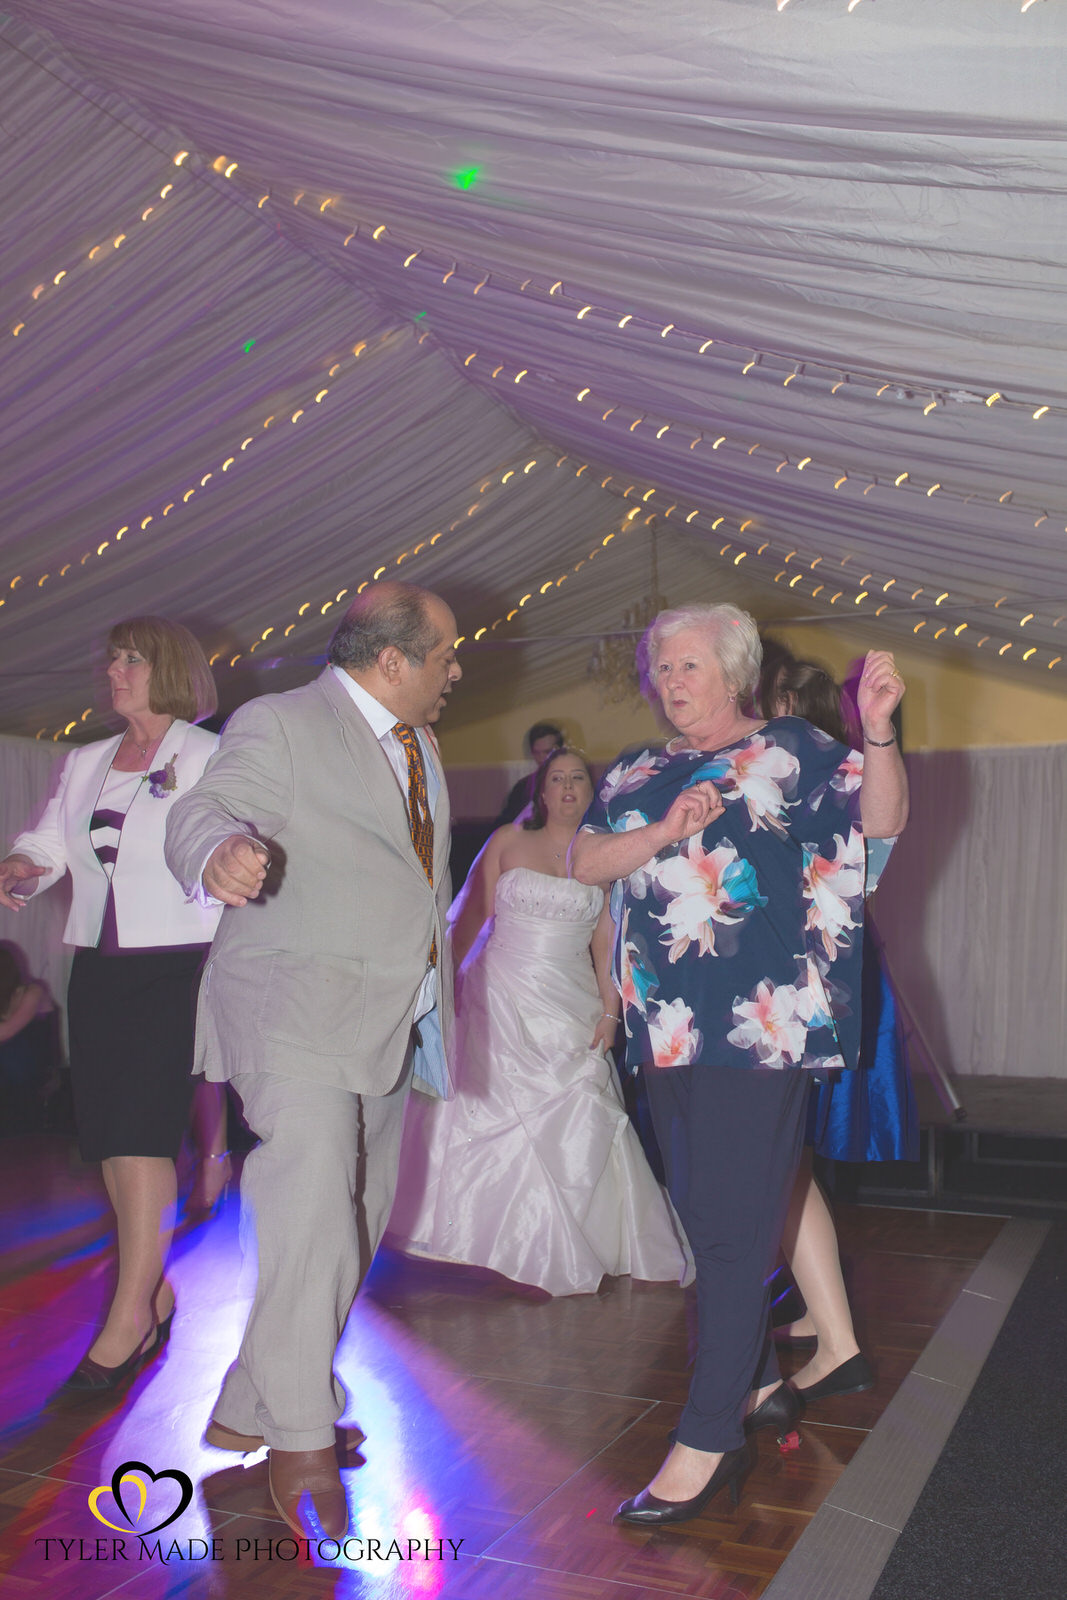 Wedding Guests dancing at The Barn, Upchurch Wedding Venue by Kent Wedding Photographer Tyler Made Photography